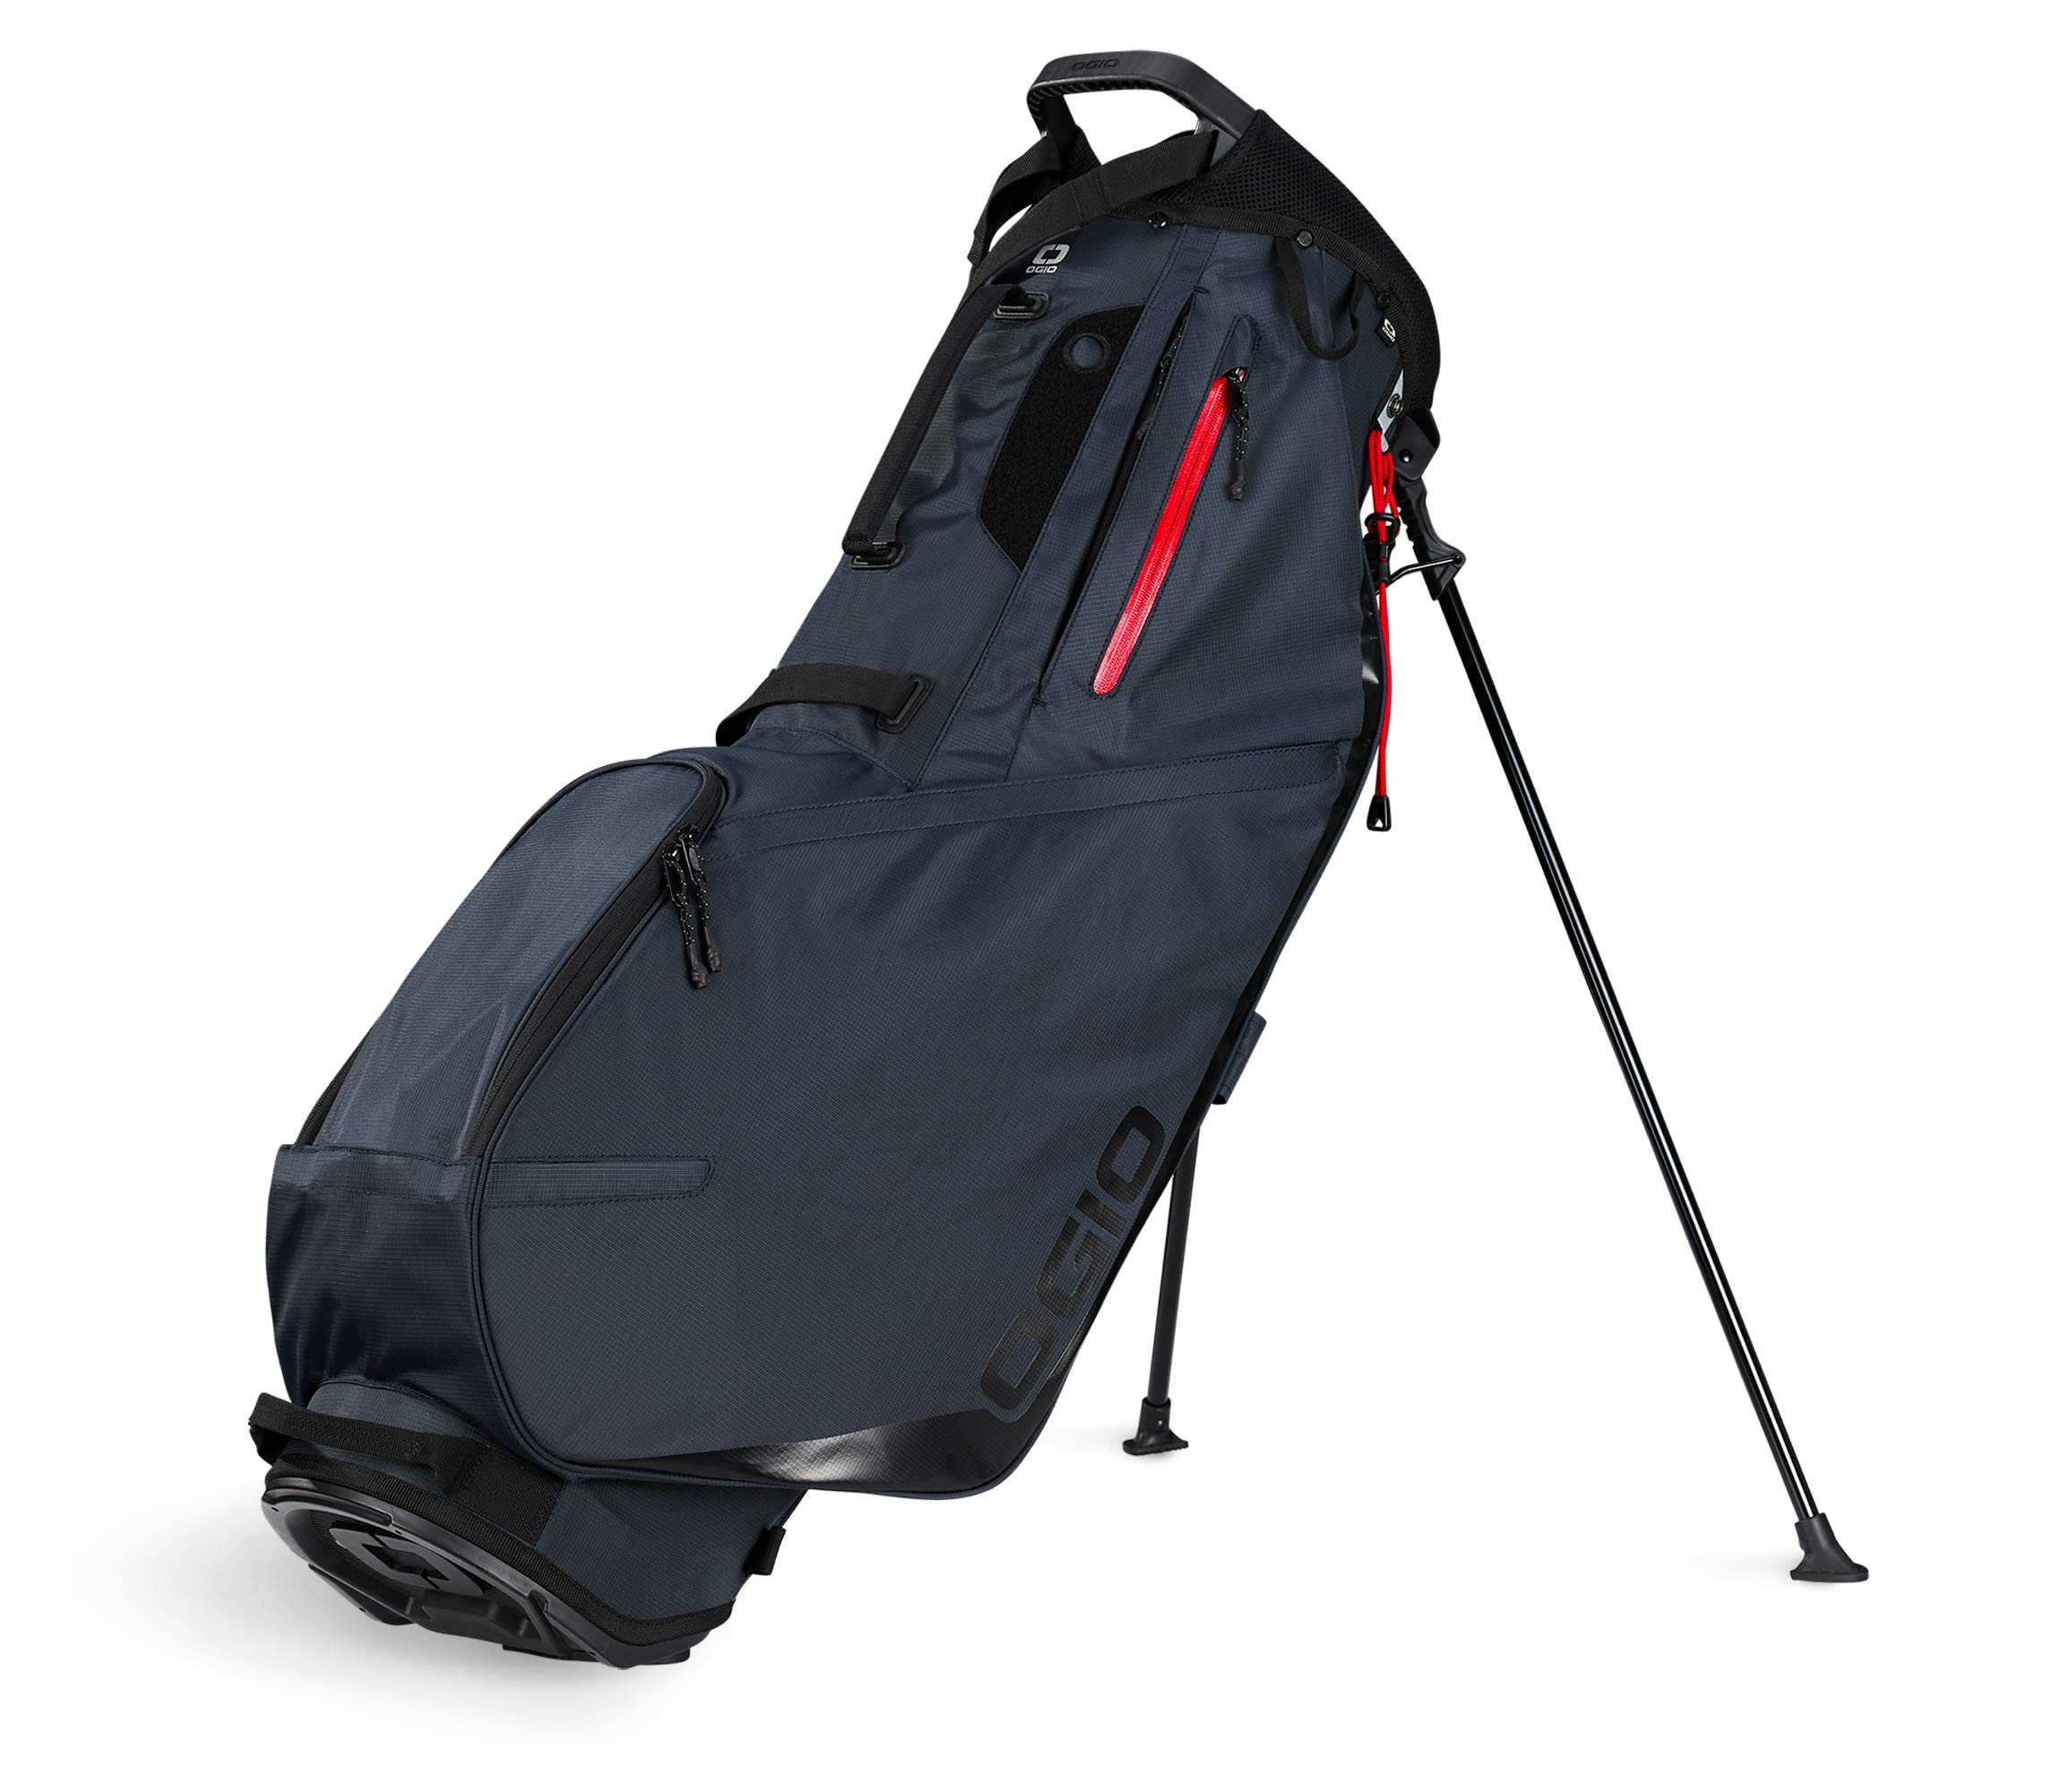 OGIO SHADOW Fuse 304 Golf Stand Bag, Navy/Navy